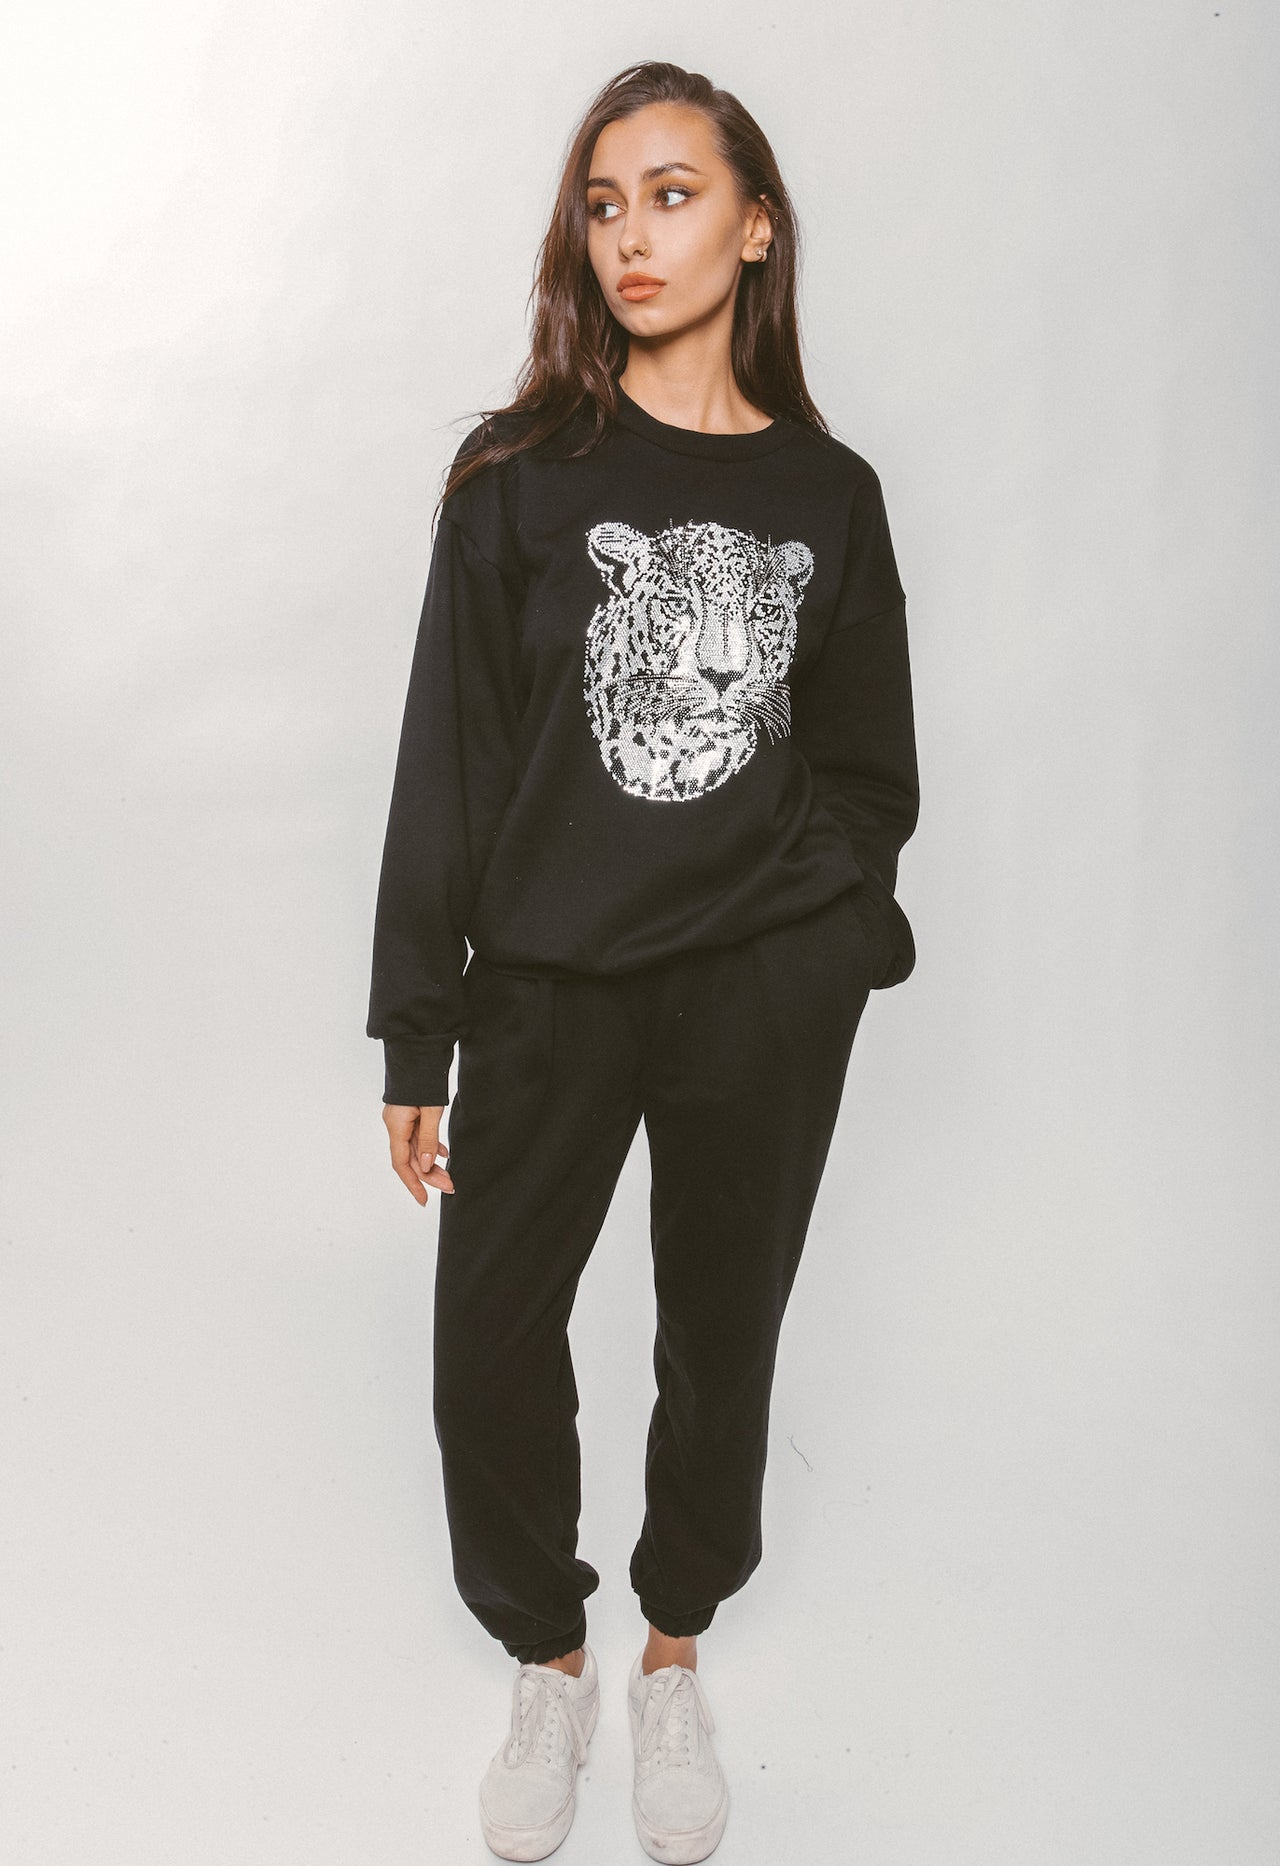 CRYSTAL LEOPARD SWEATSHIRT - Lurelly